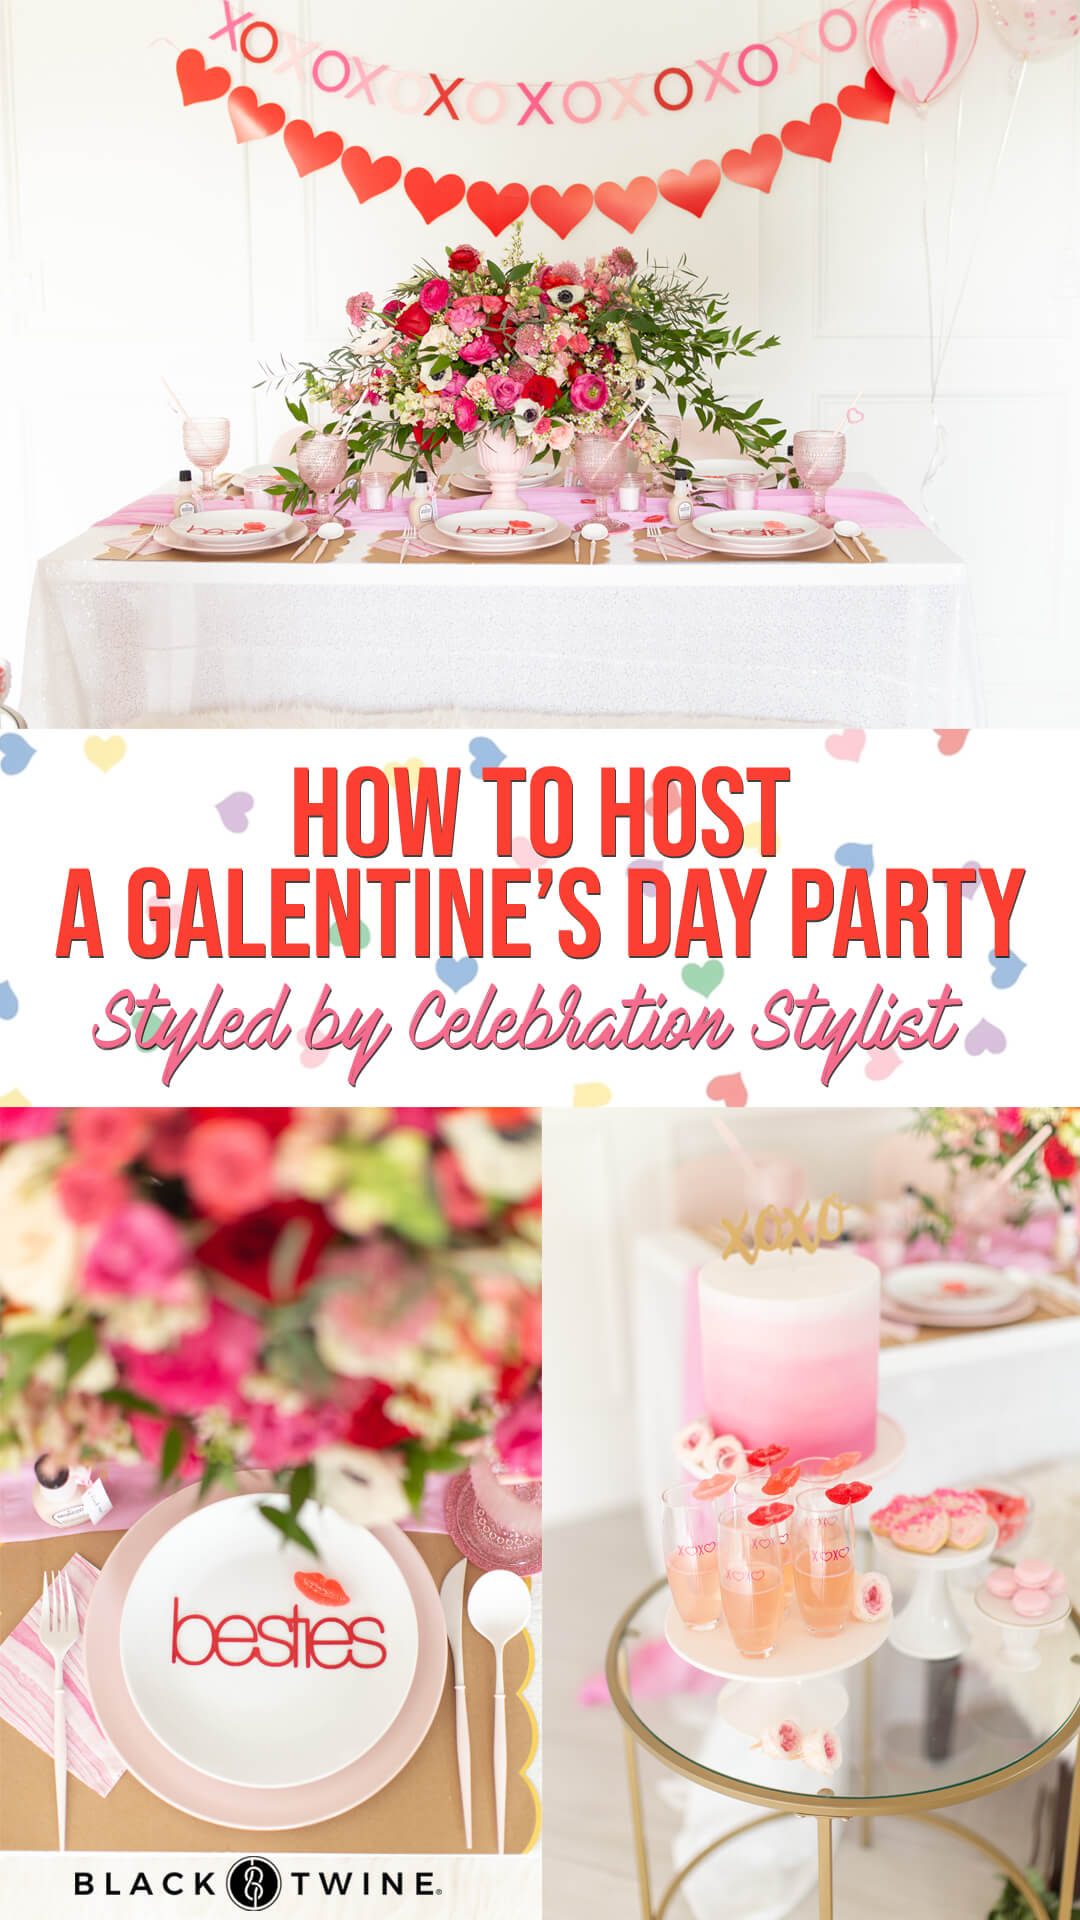 Tablescape, Place Setting and Dessert Table from Galentine's Day Party Styled by Celebration Stylist | Black Twine